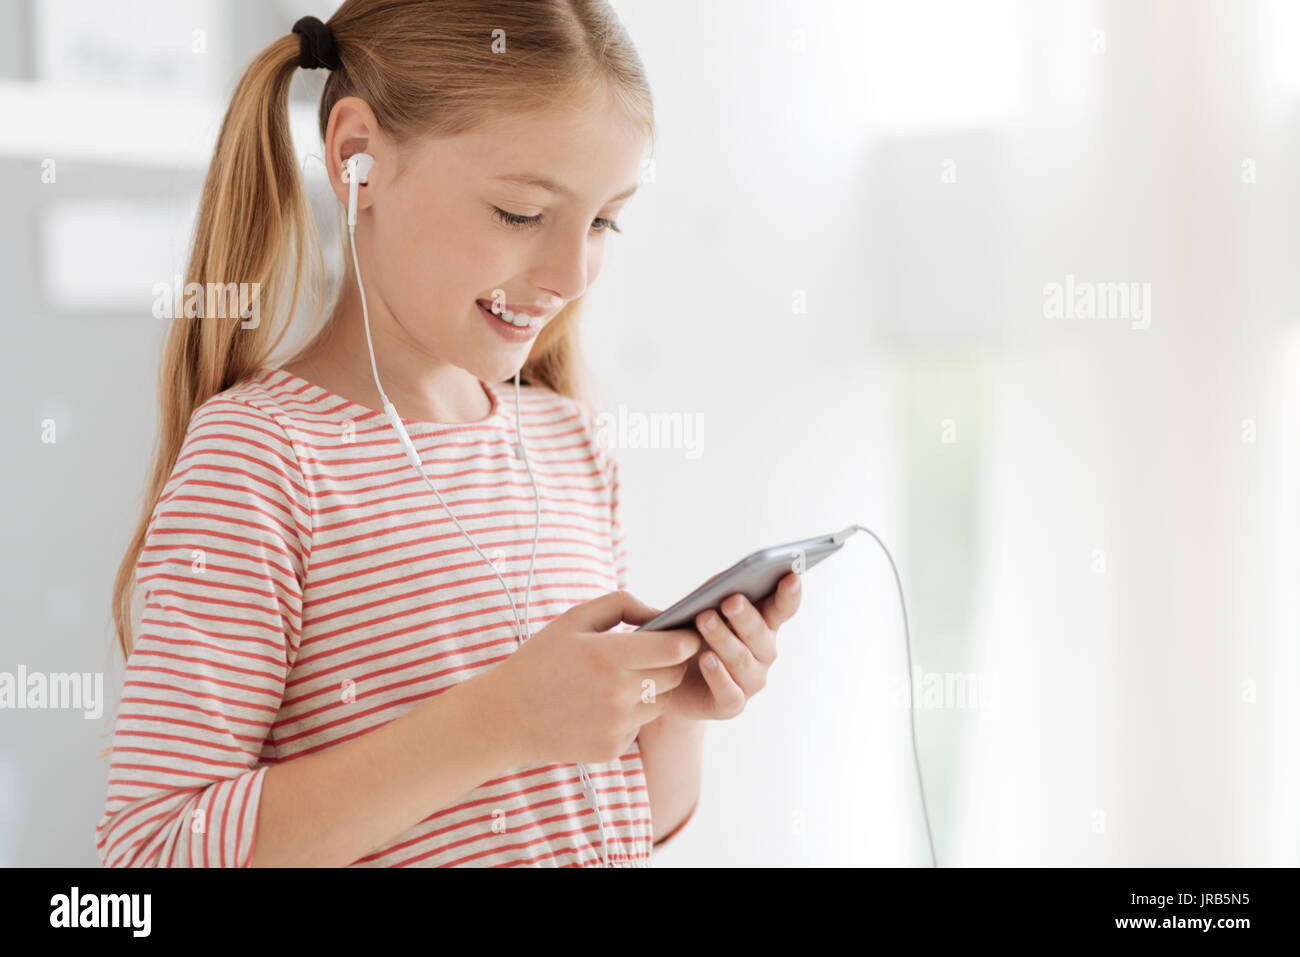 Positive minded child listening to music - Stock Image